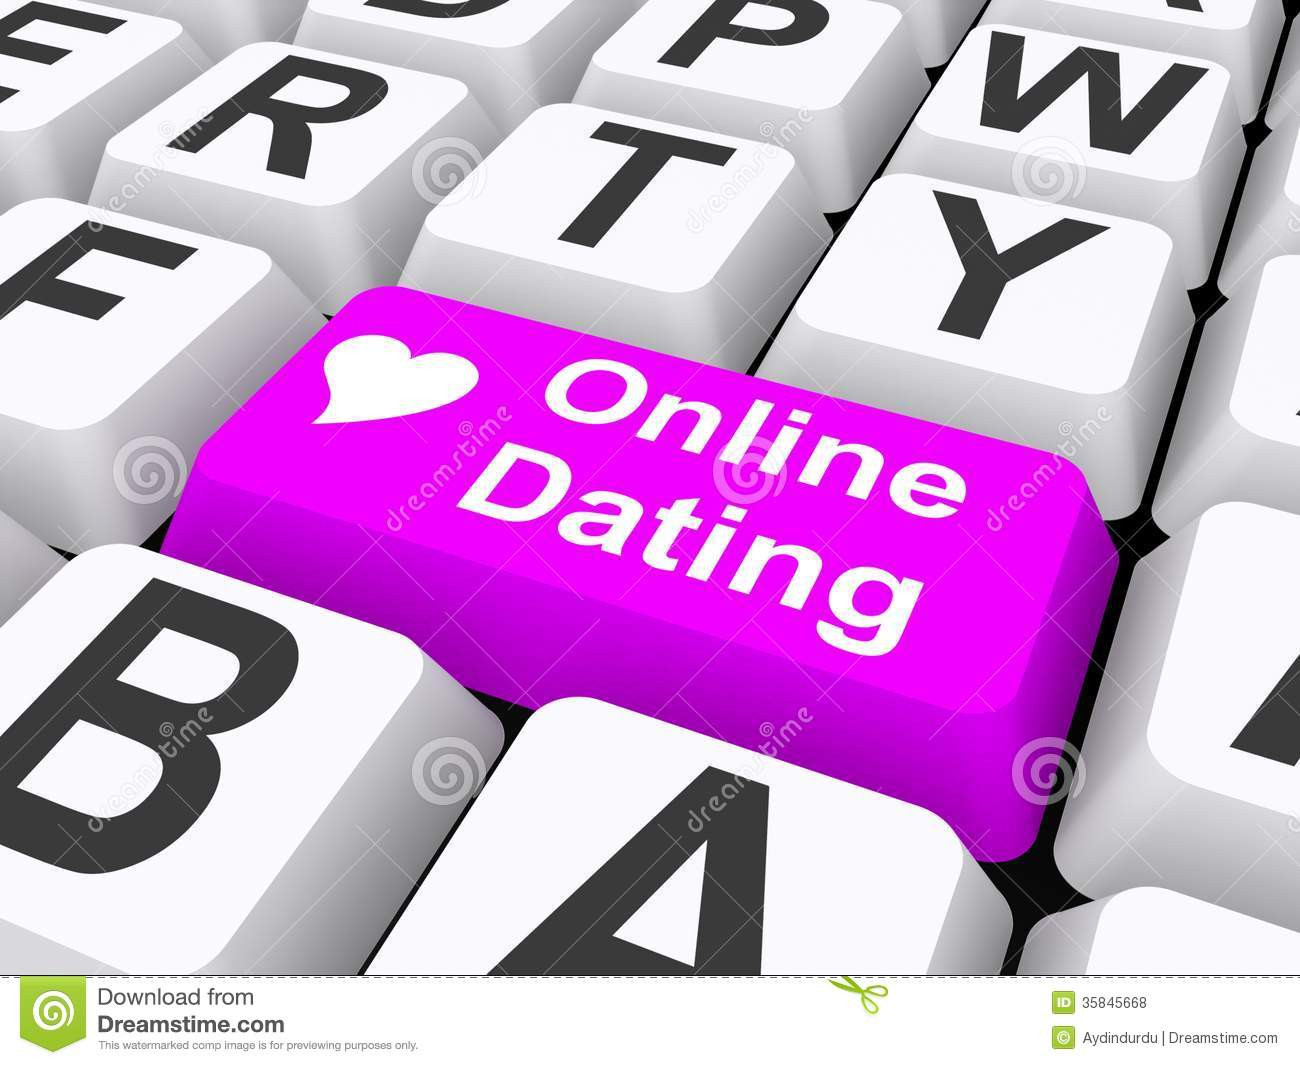 free online personals in zion Find love in utah at utah match the premier utah online dating site featuring local utah singles looking for love, romance, friendship and more set up your free profile today, utah match.